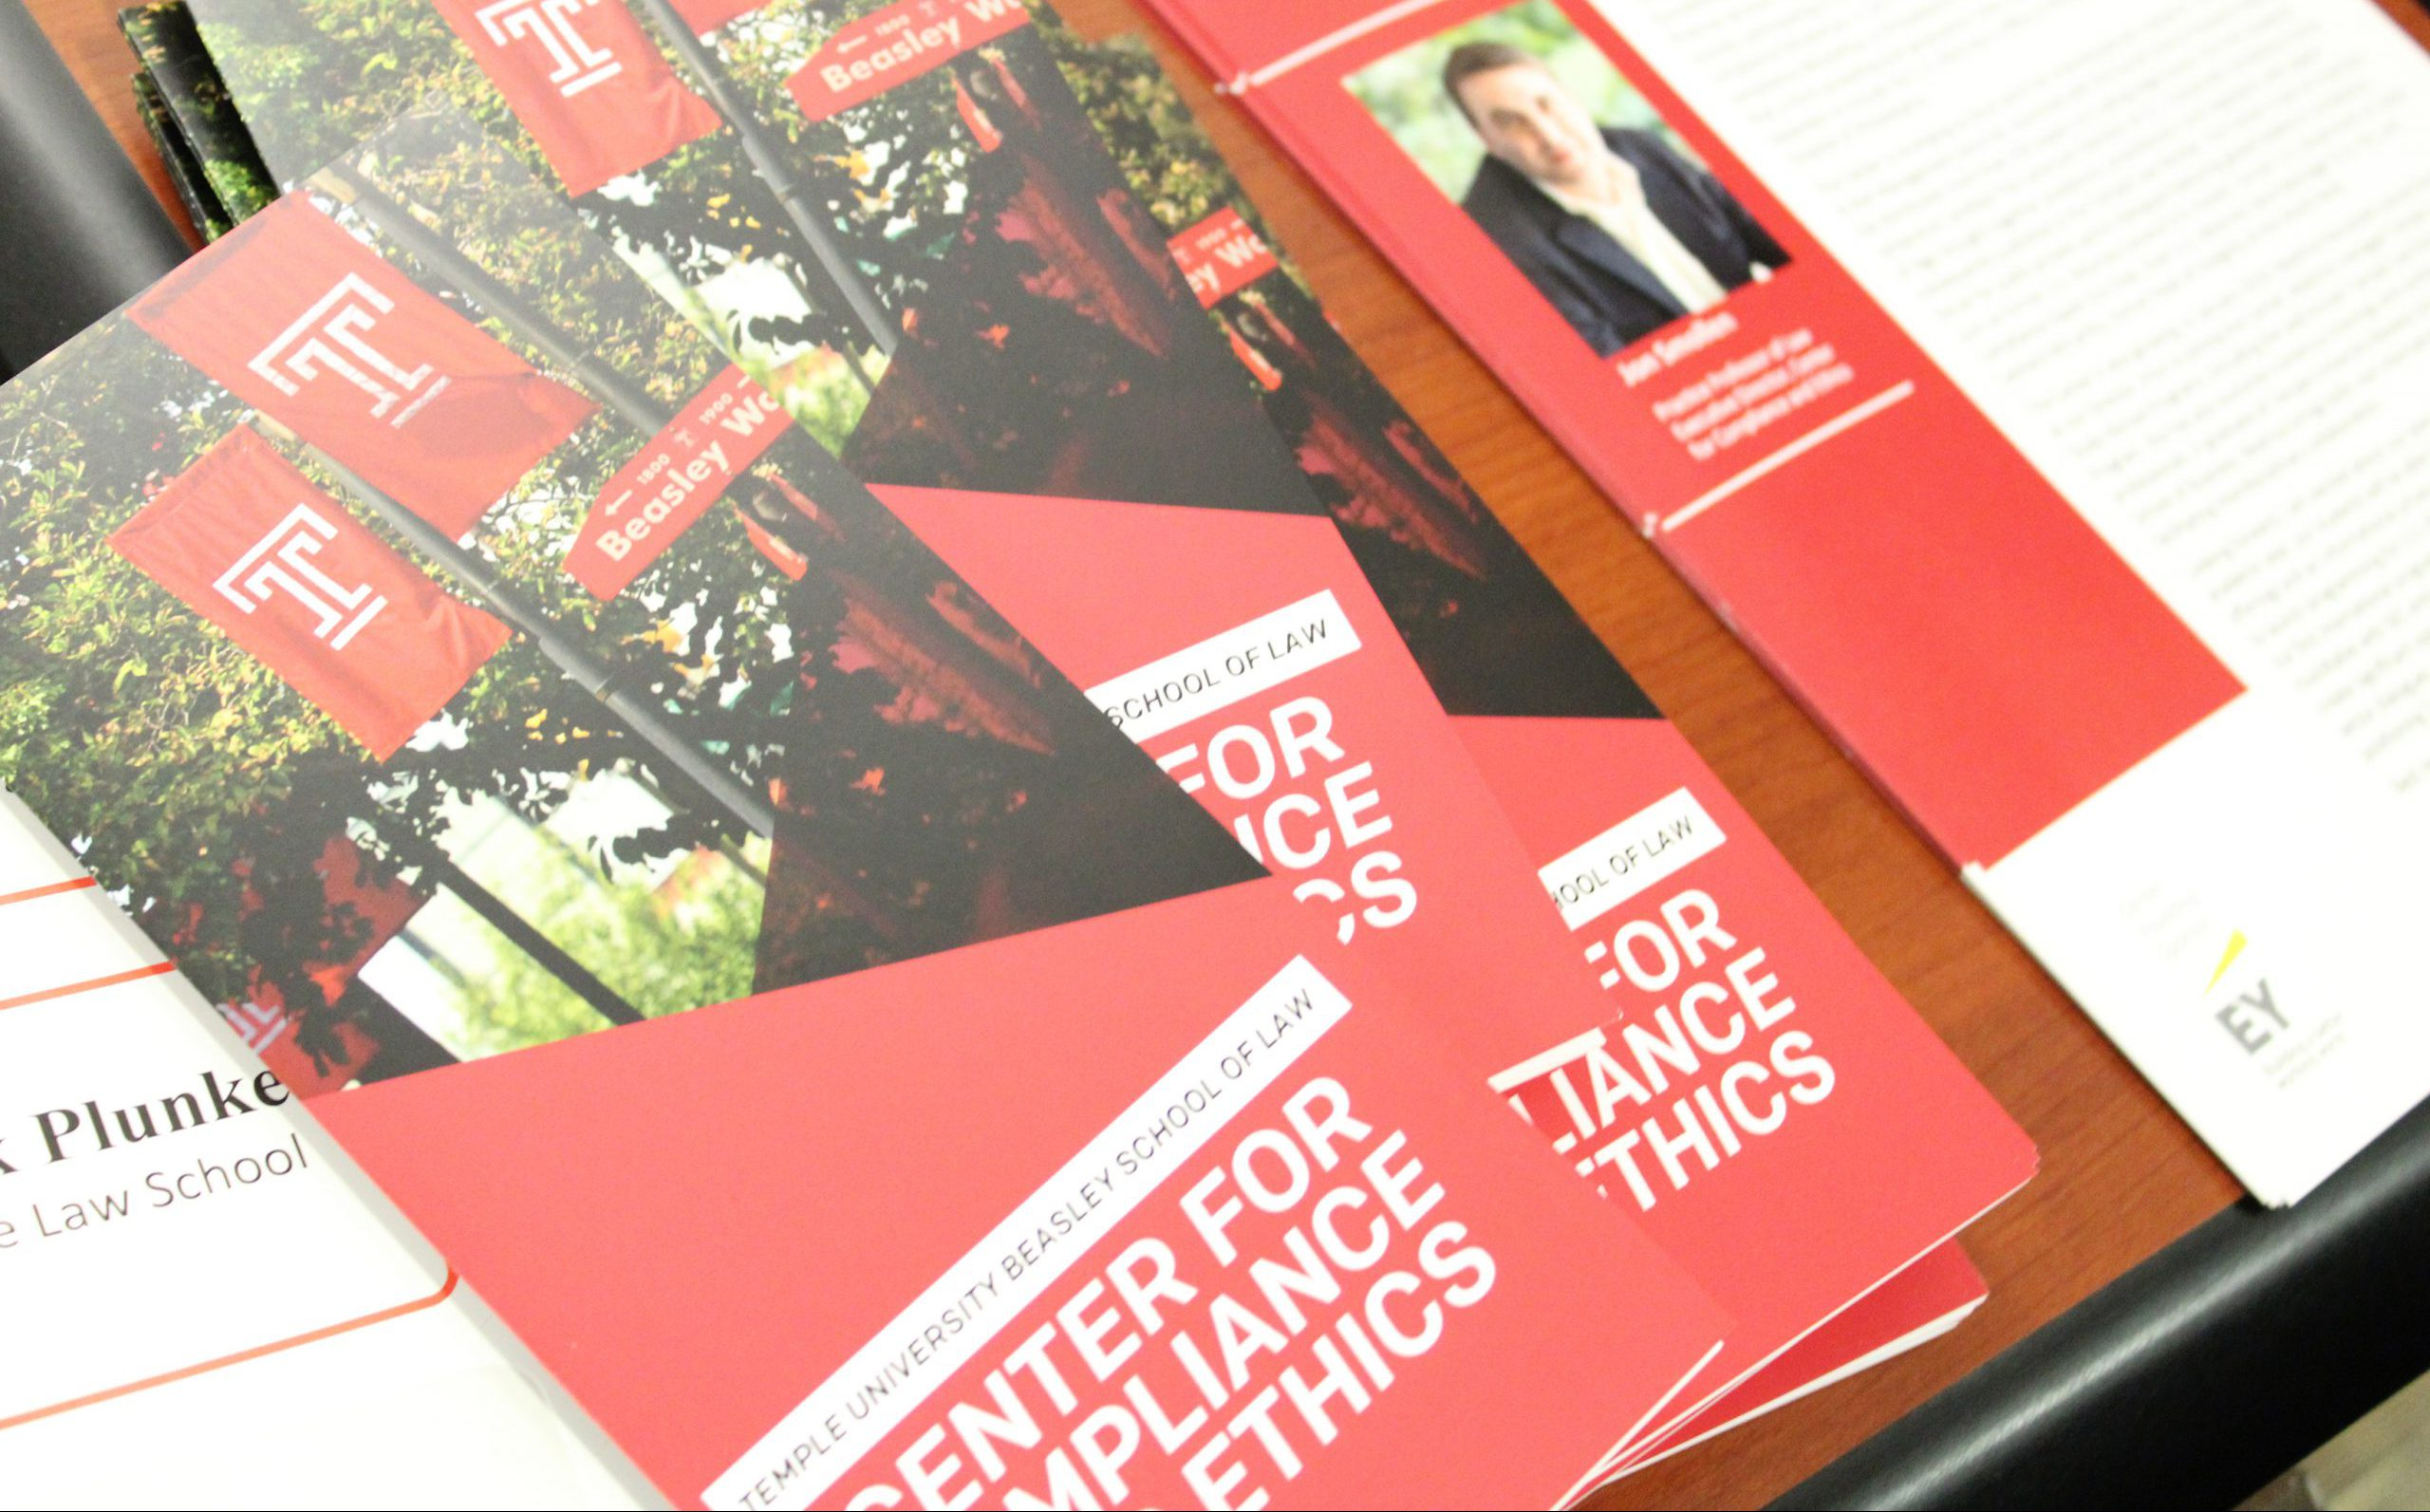 Center of Compliance and Ethics brochures on a deck